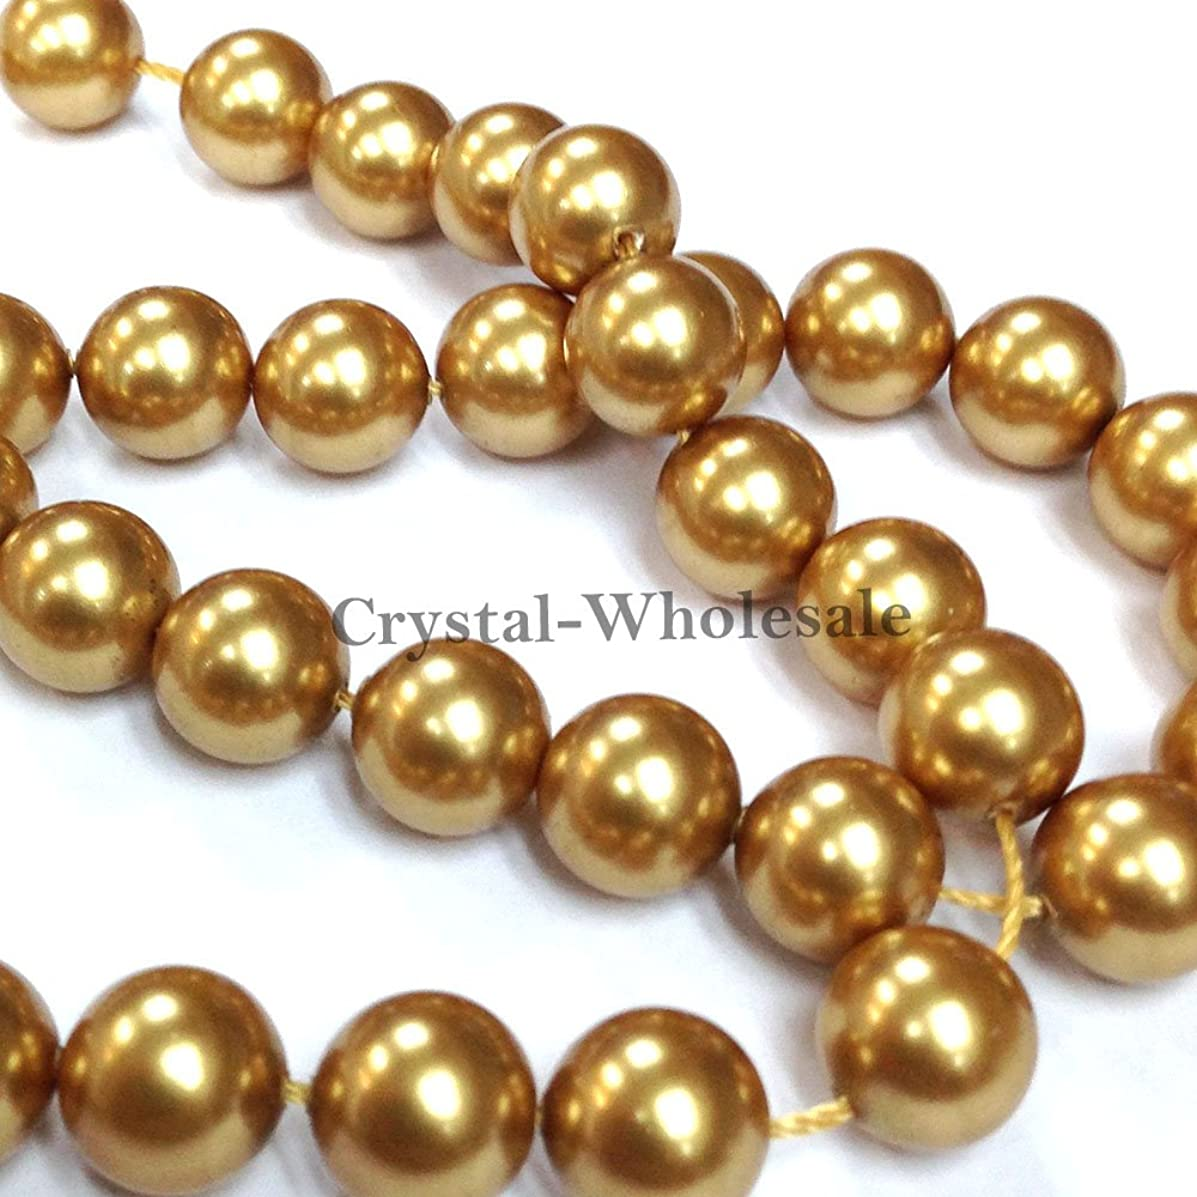 Bright Gold Swarovski Pearl -3mm, 200 Bead Strand